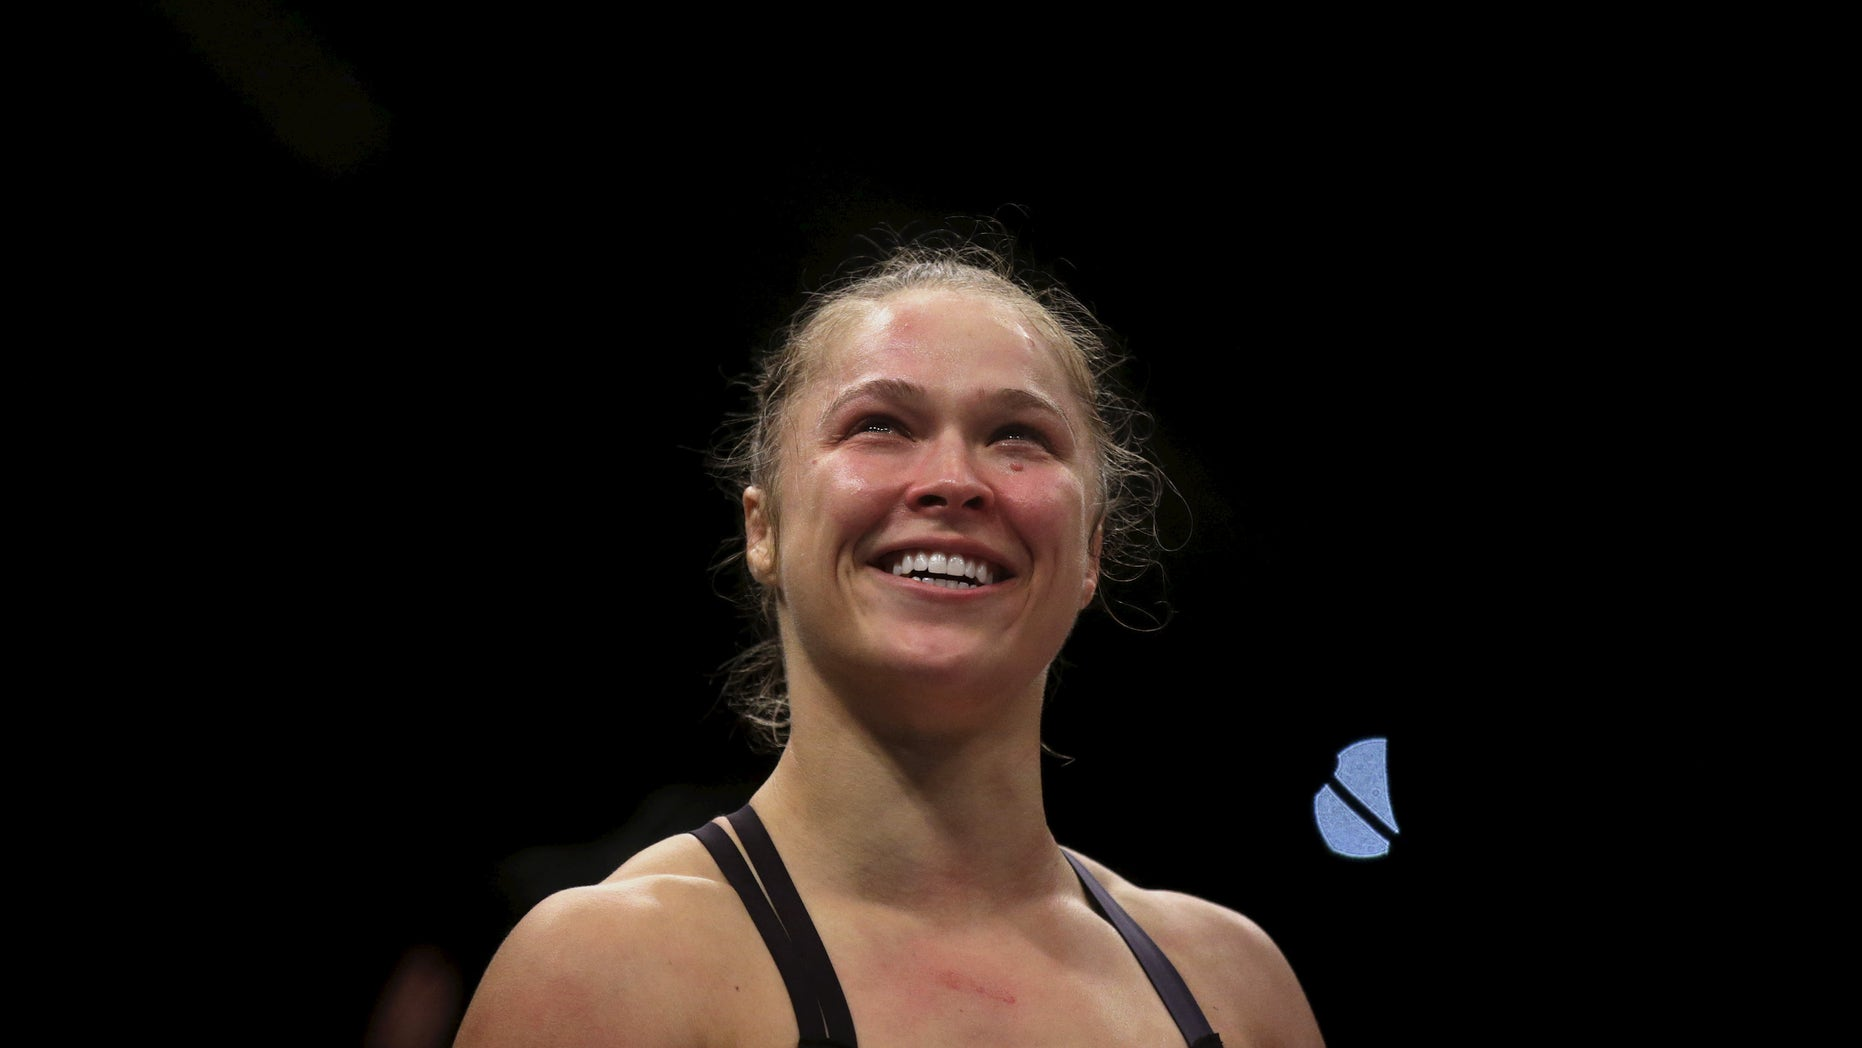 Ronda Rousey (R) of U.S celebrates after defeating Bethe Correia of Brazil during their Ultimate Fighting Championship (UFC) match, a professional mixed martial arts (MMA) competition in Rio de Janeiro, Brazil August 1, 2015.